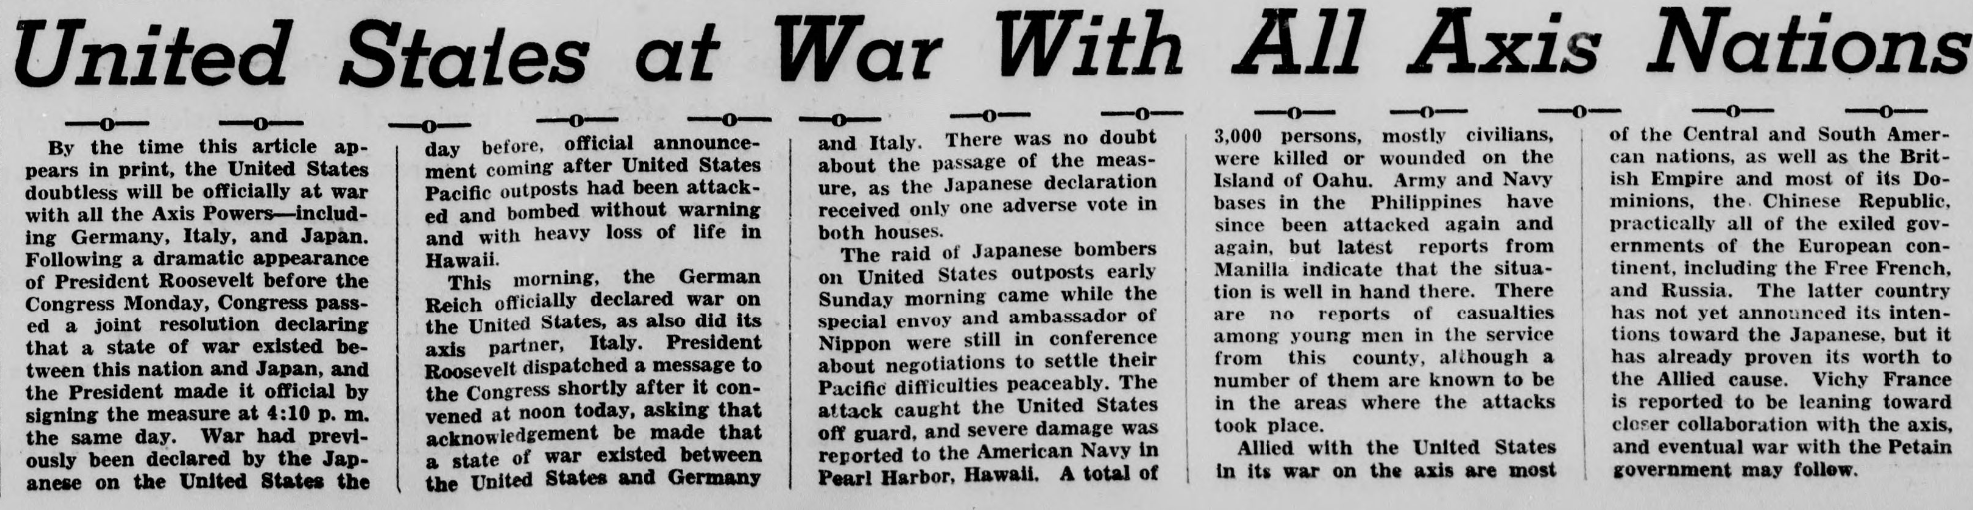 Excerpt from the December 11, 1941 issue of the paper discussing America's entrance into World War II.